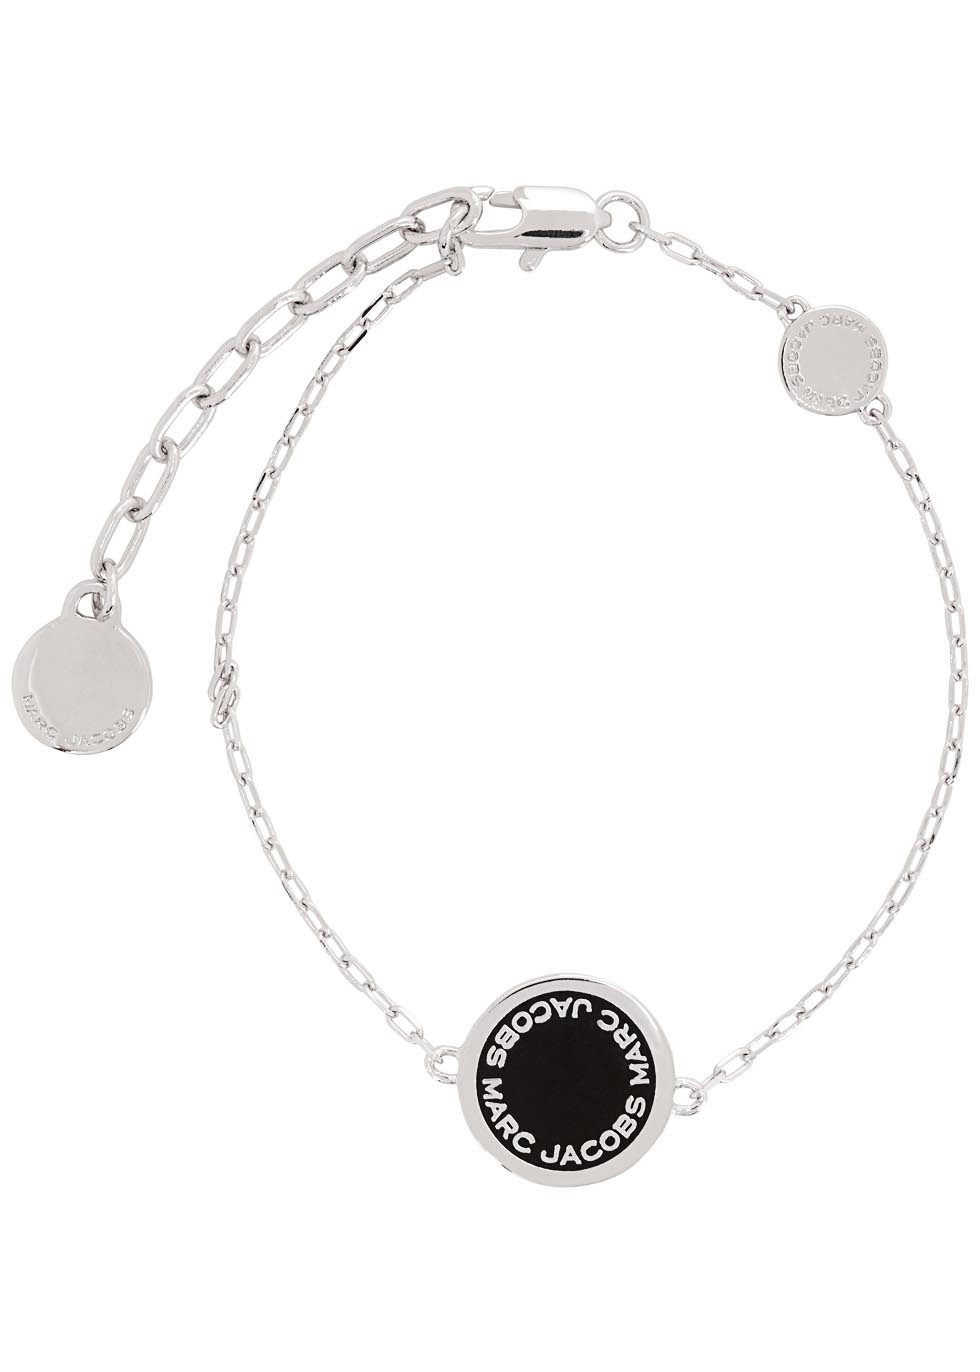 Logo Disc Silver Tone Bracelet - predominant colour: silver; secondary colour: black; occasions: casual, work, creative work; style: chain; size: standard; material: chain/metal; finish: plain; embellishment: chain/metal; season: s/s 2016; wardrobe: basic